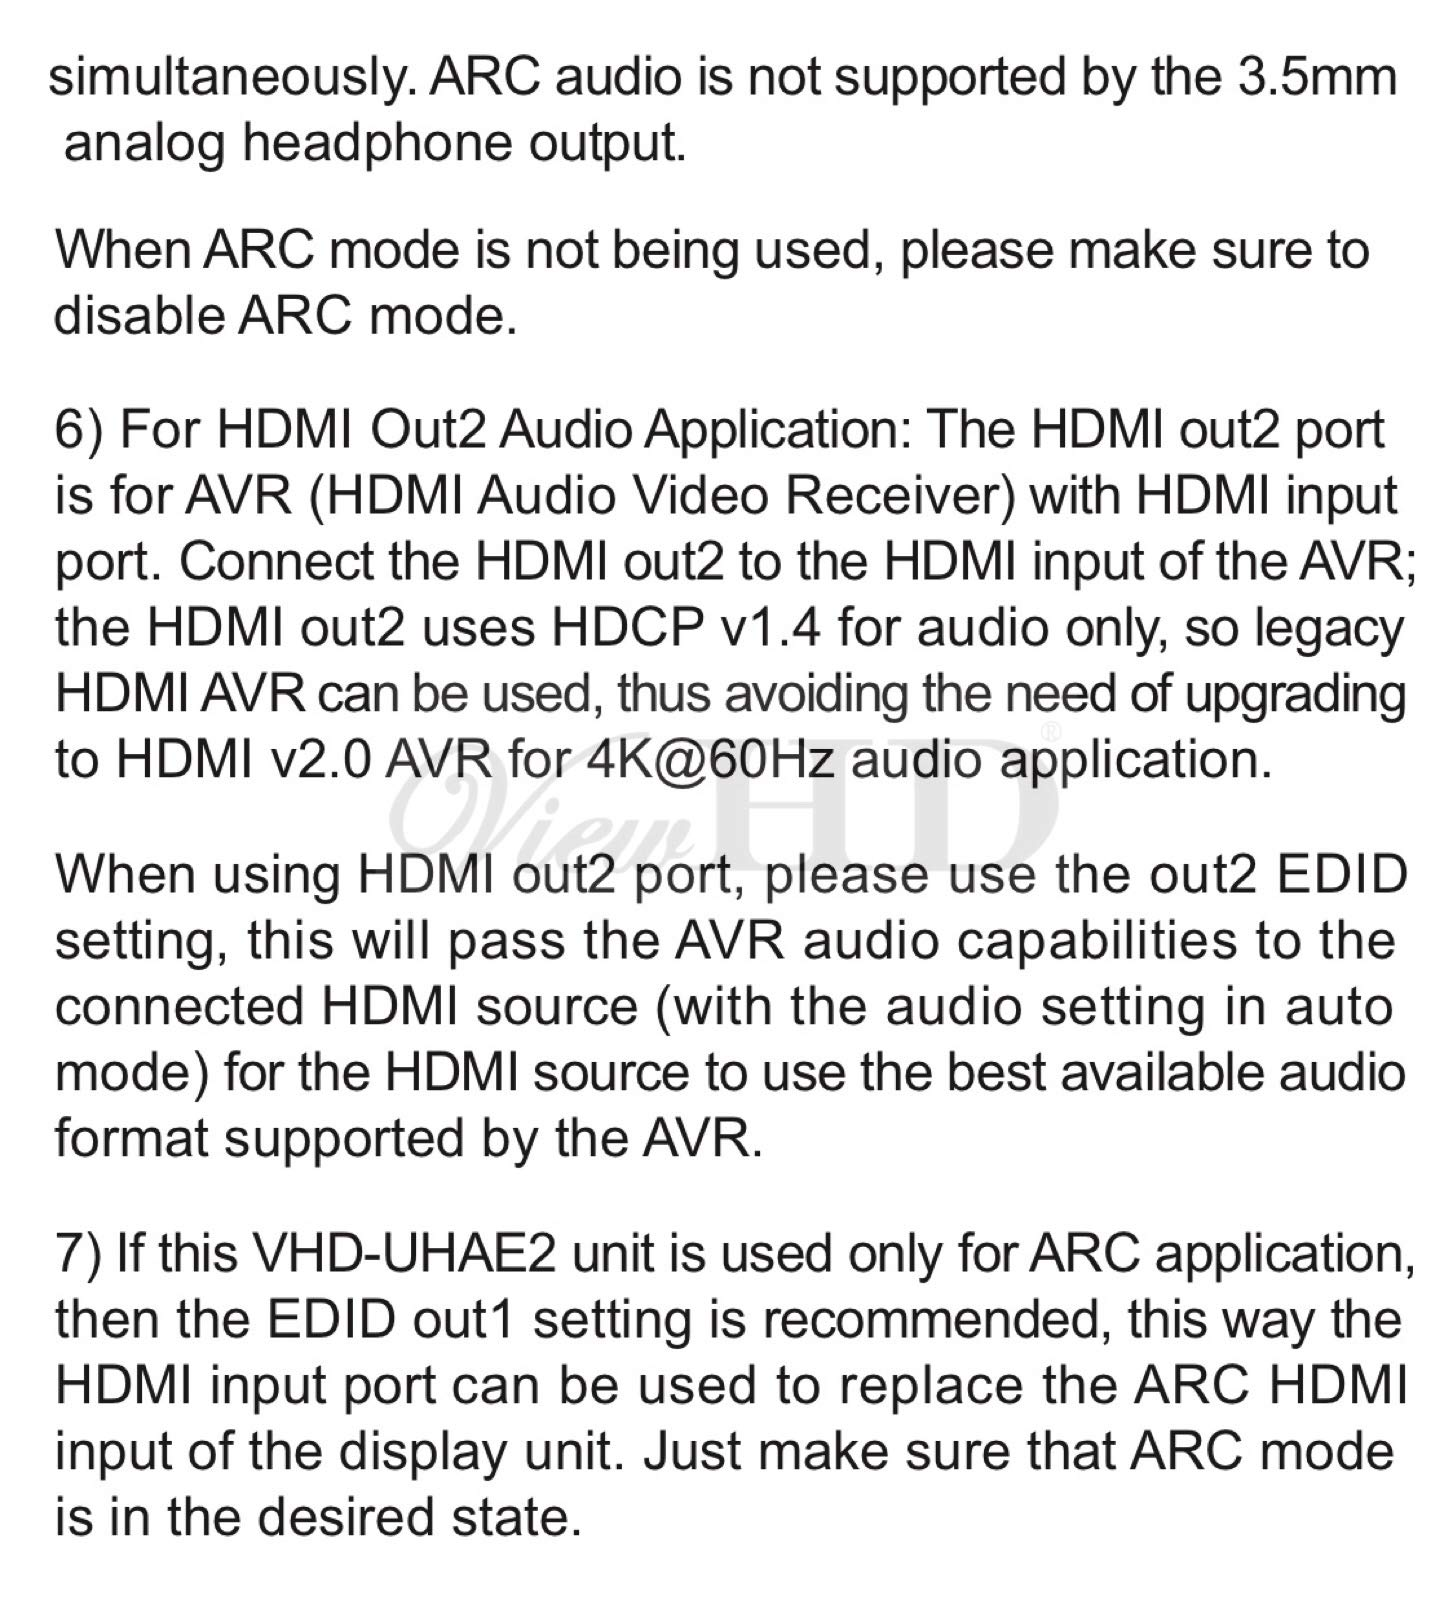 ViewHD UHD 18G HDMI Audio Extractor/Splitter Support HDMI v2.0 | HDCP v2.2 | 4K@60Hz | HDR | ARC | 3.5MM Analog Audio Output | Toslink Optical Audio Output | HDMI Audio Output | Model: VHD-UHAE2 by ViewHD (Image #10)